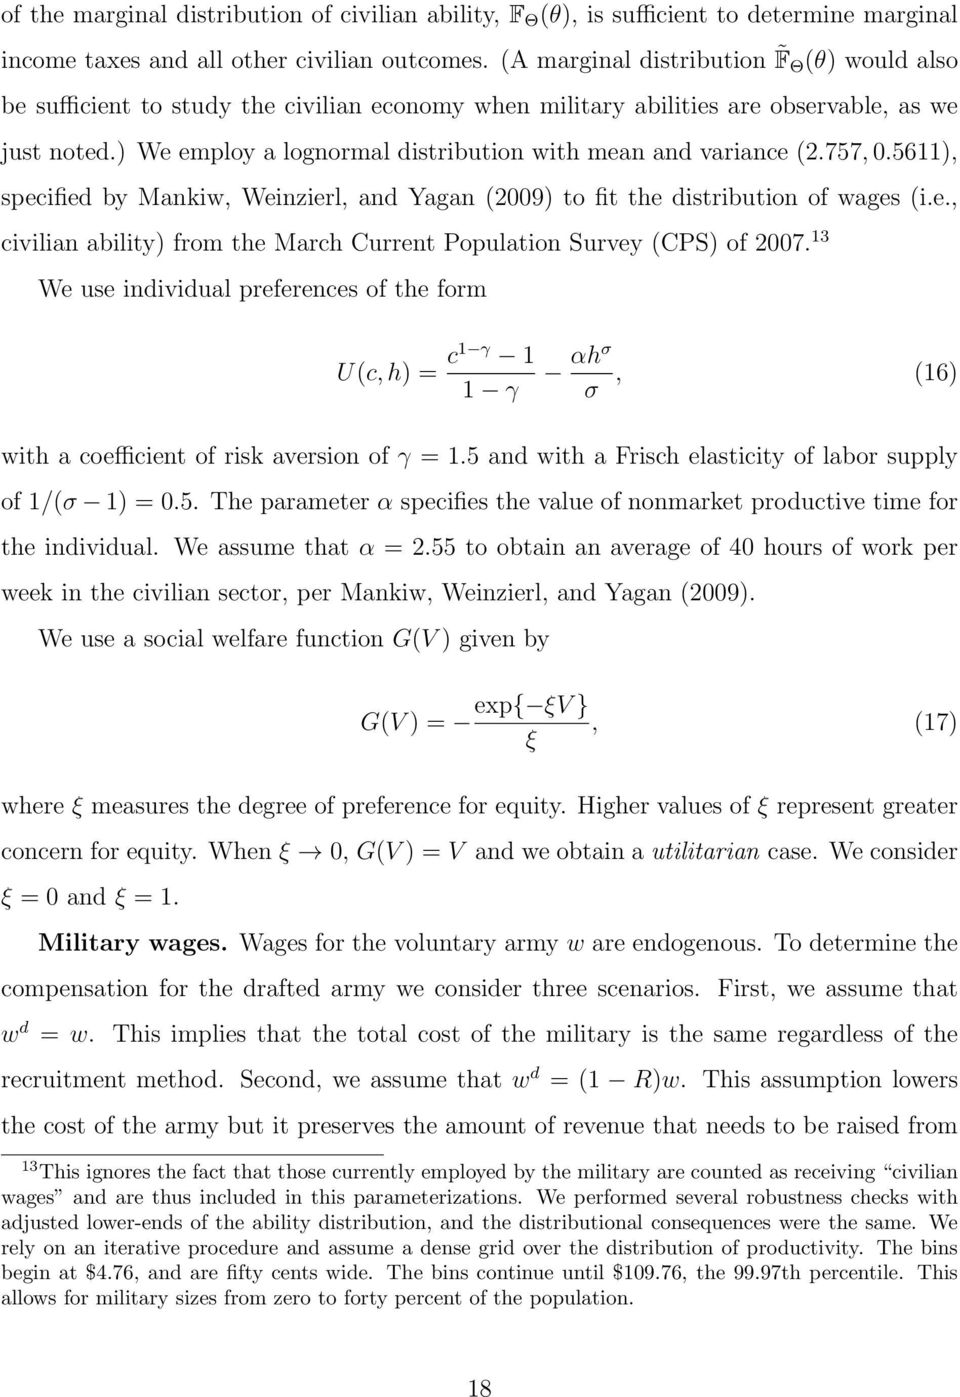 ) We employ a lognormal distribution with mean and variance (2.757,.5611), specified by Mankiw, Weinzierl, and Yagan (29) to fit the distribution of wages (i.e., civilian ability) from the March Current Population Survey (CPS) of 27.